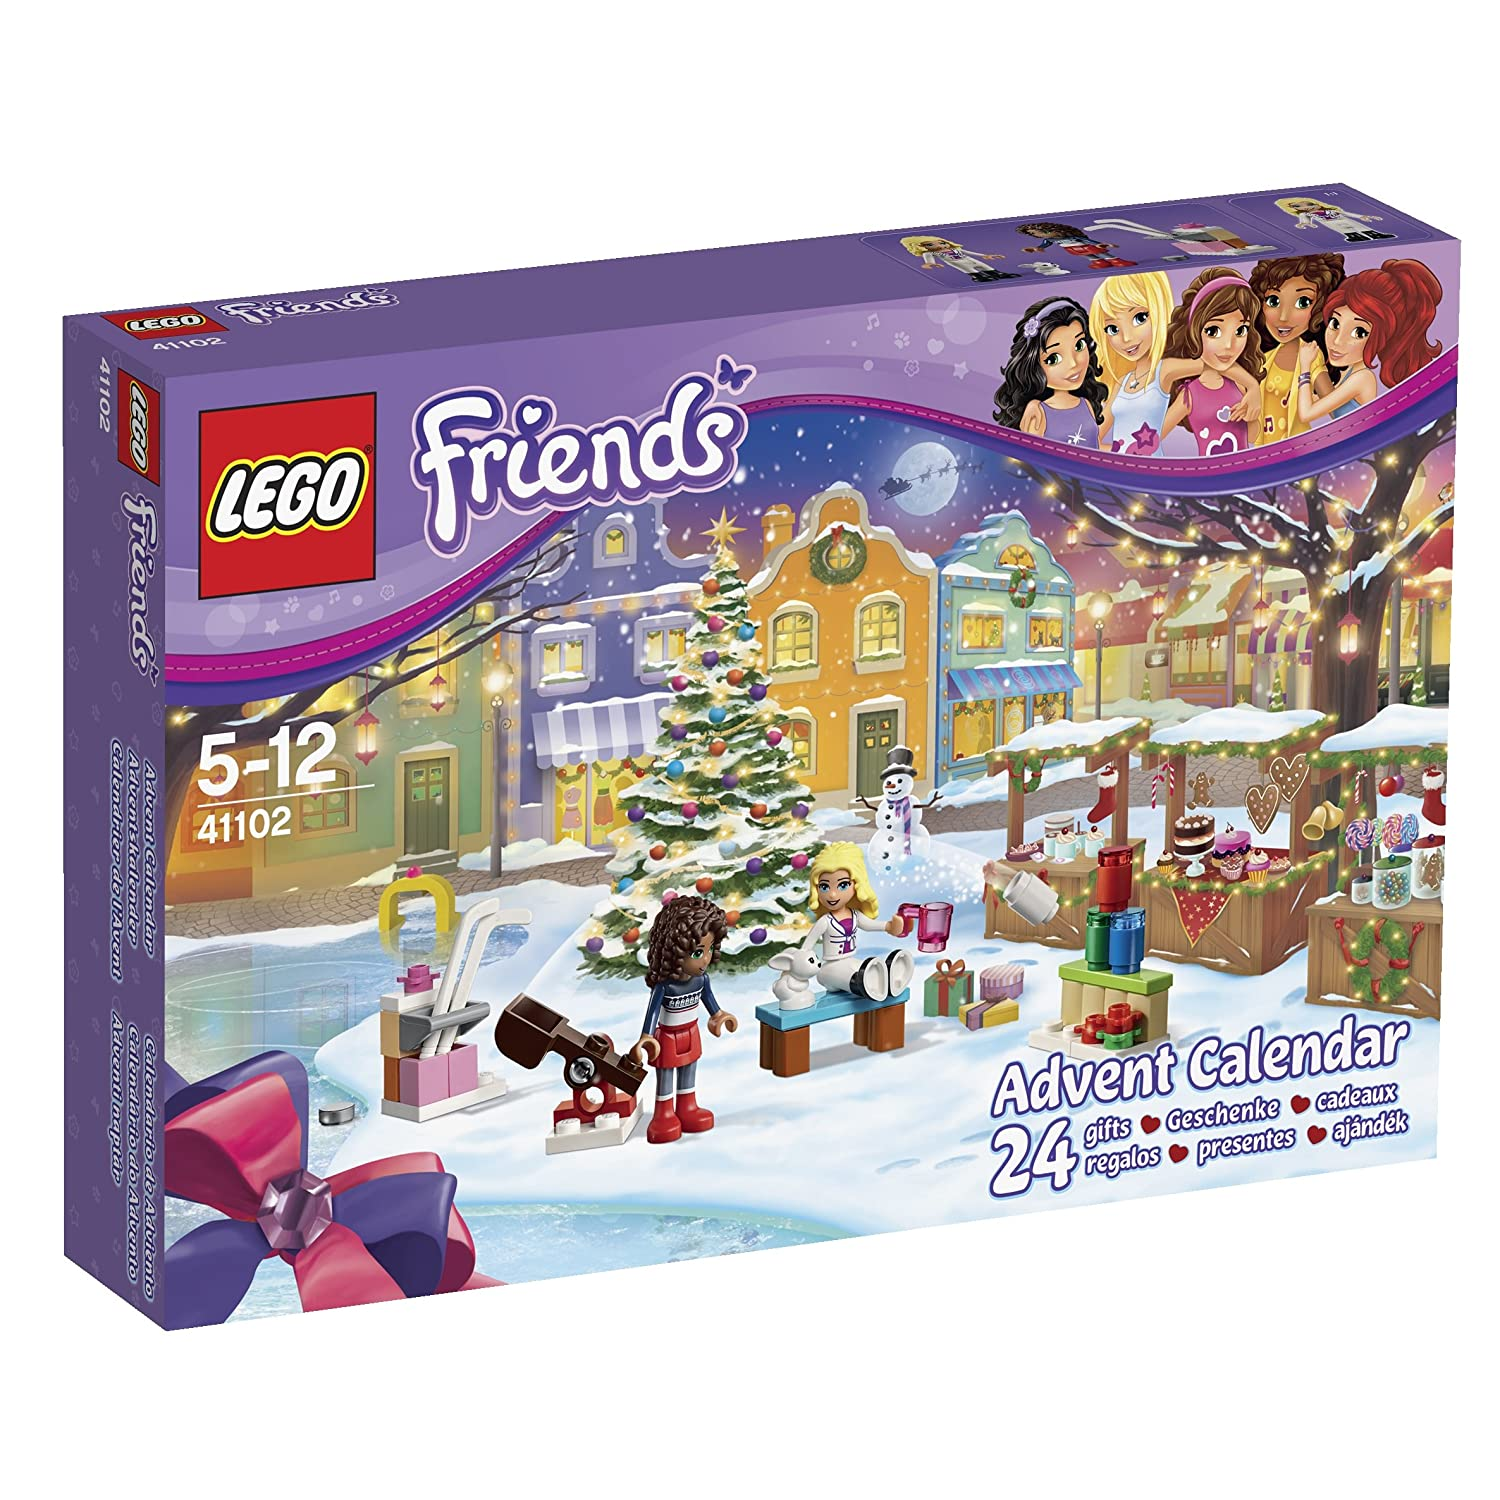 LEGO Friends 41102 Advent Calendar